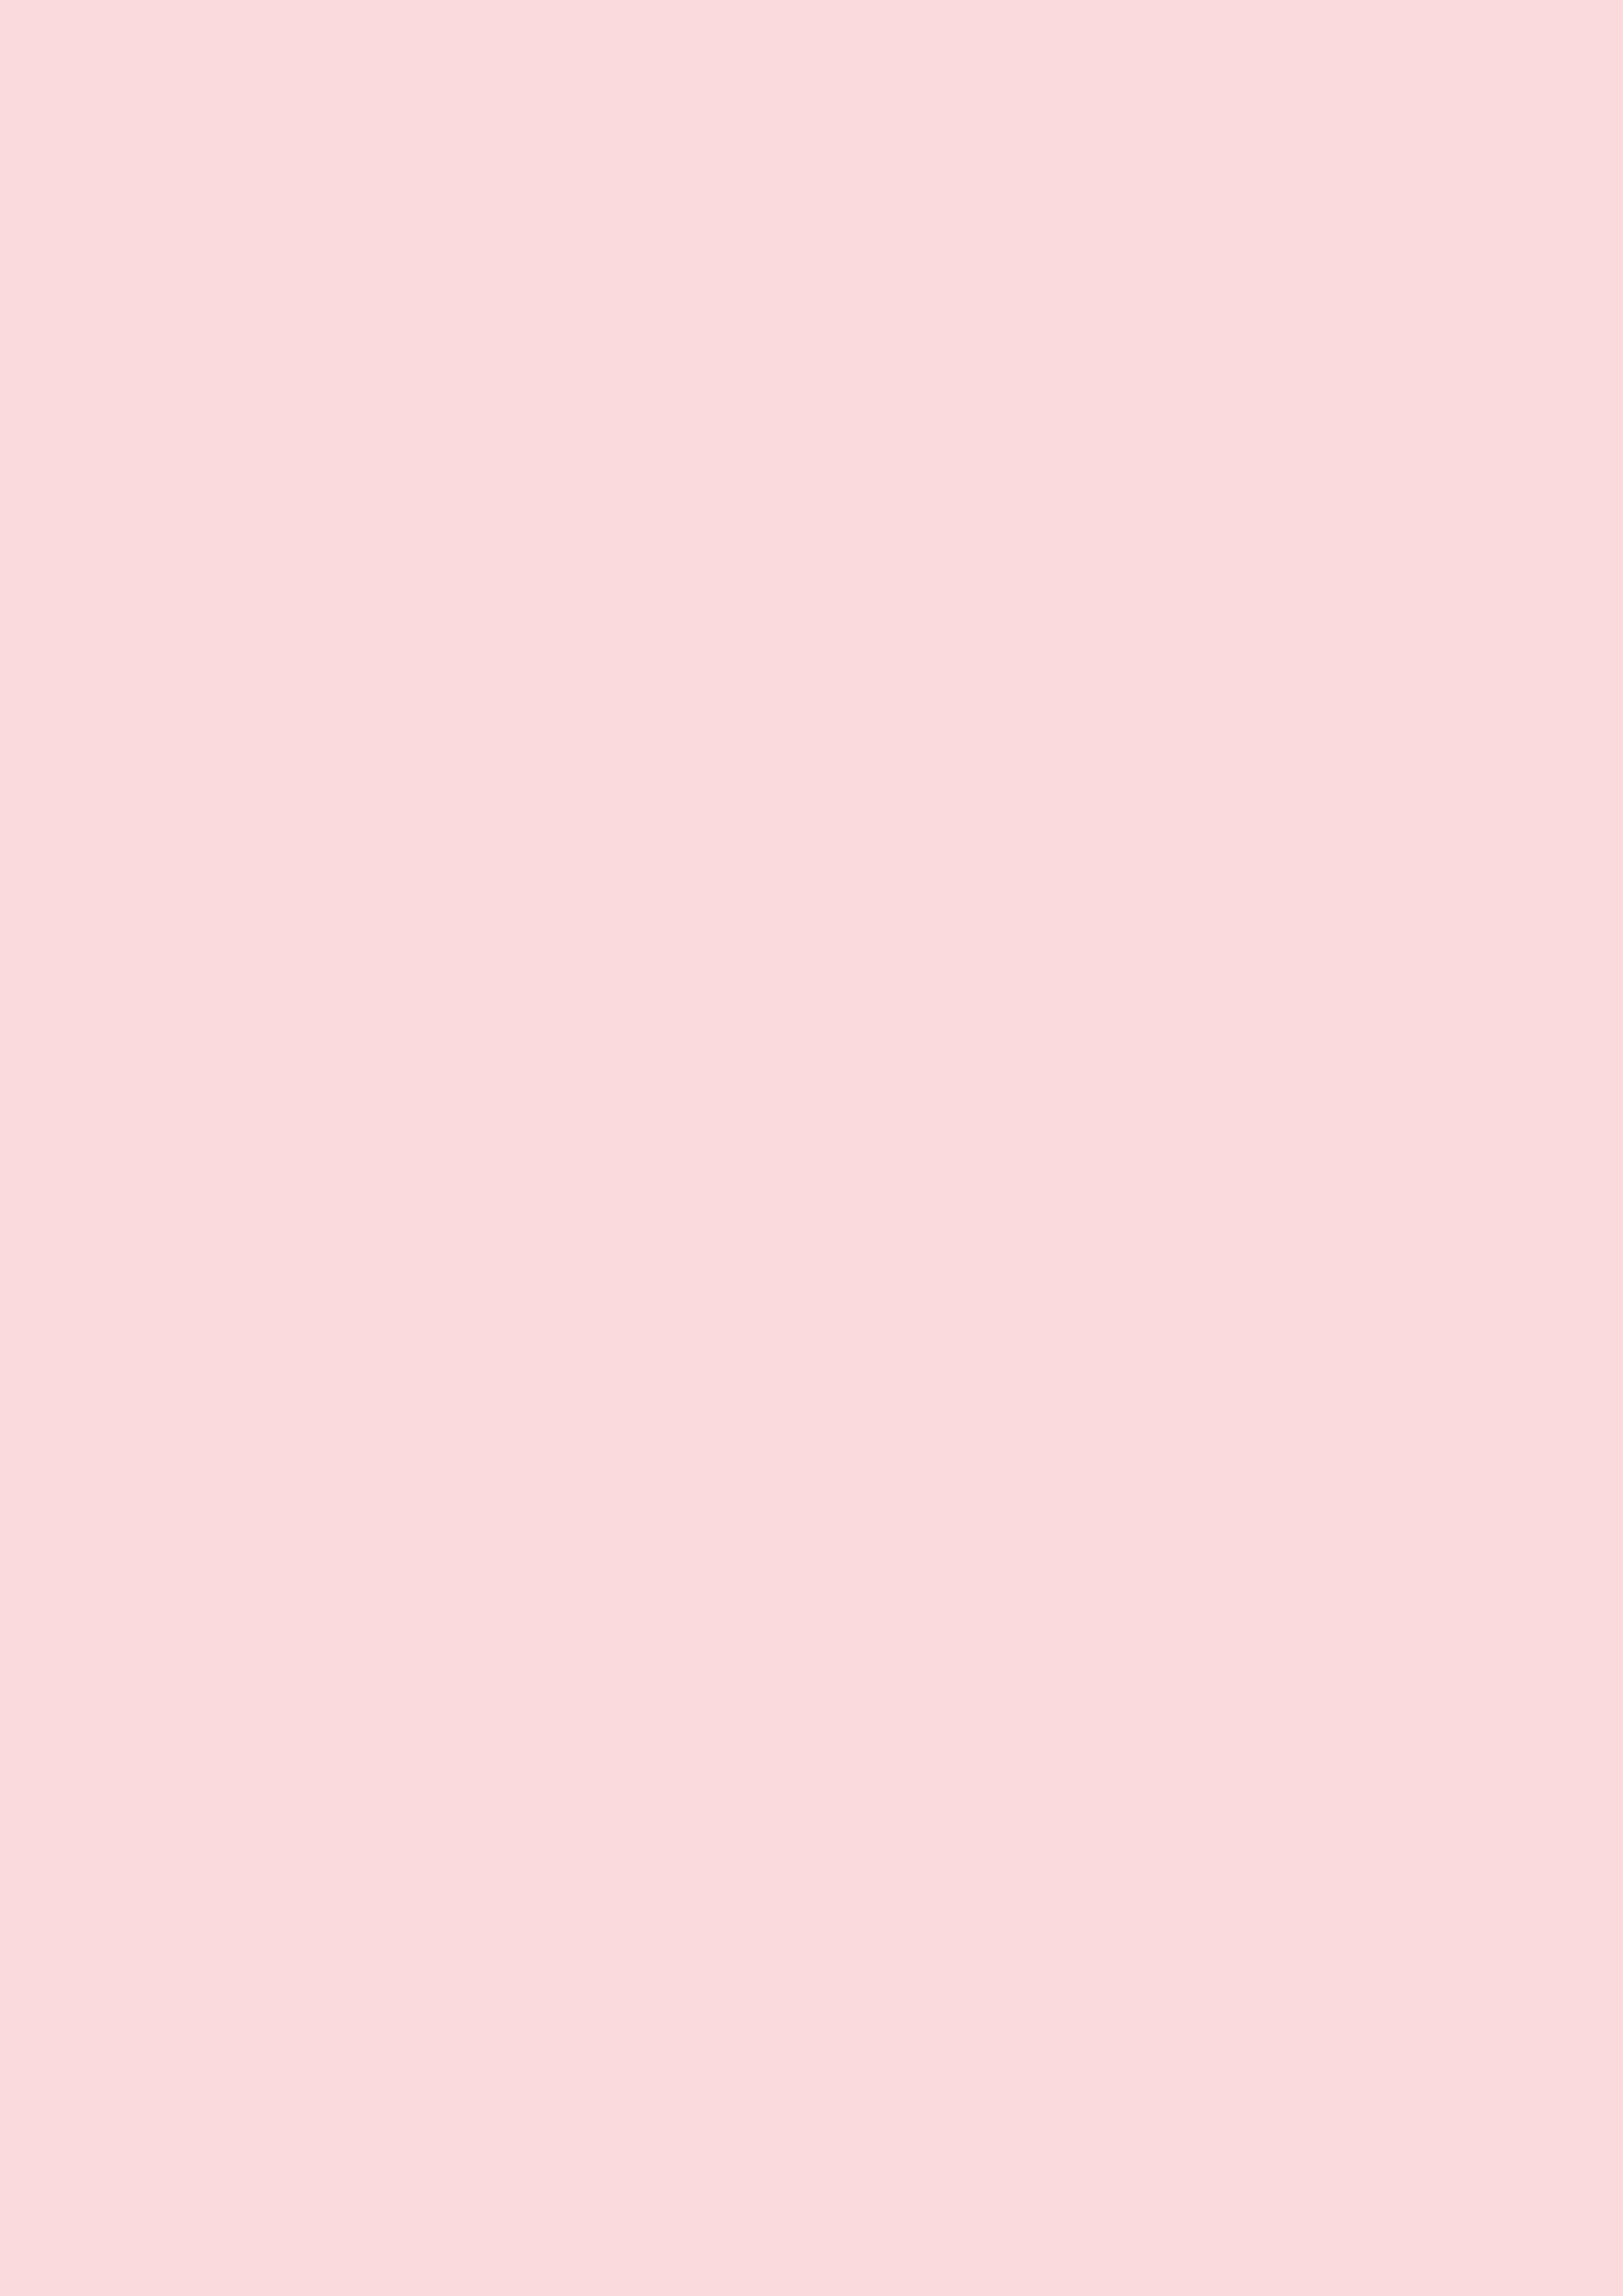 2480x3508 Pale Pink Solid Color Background